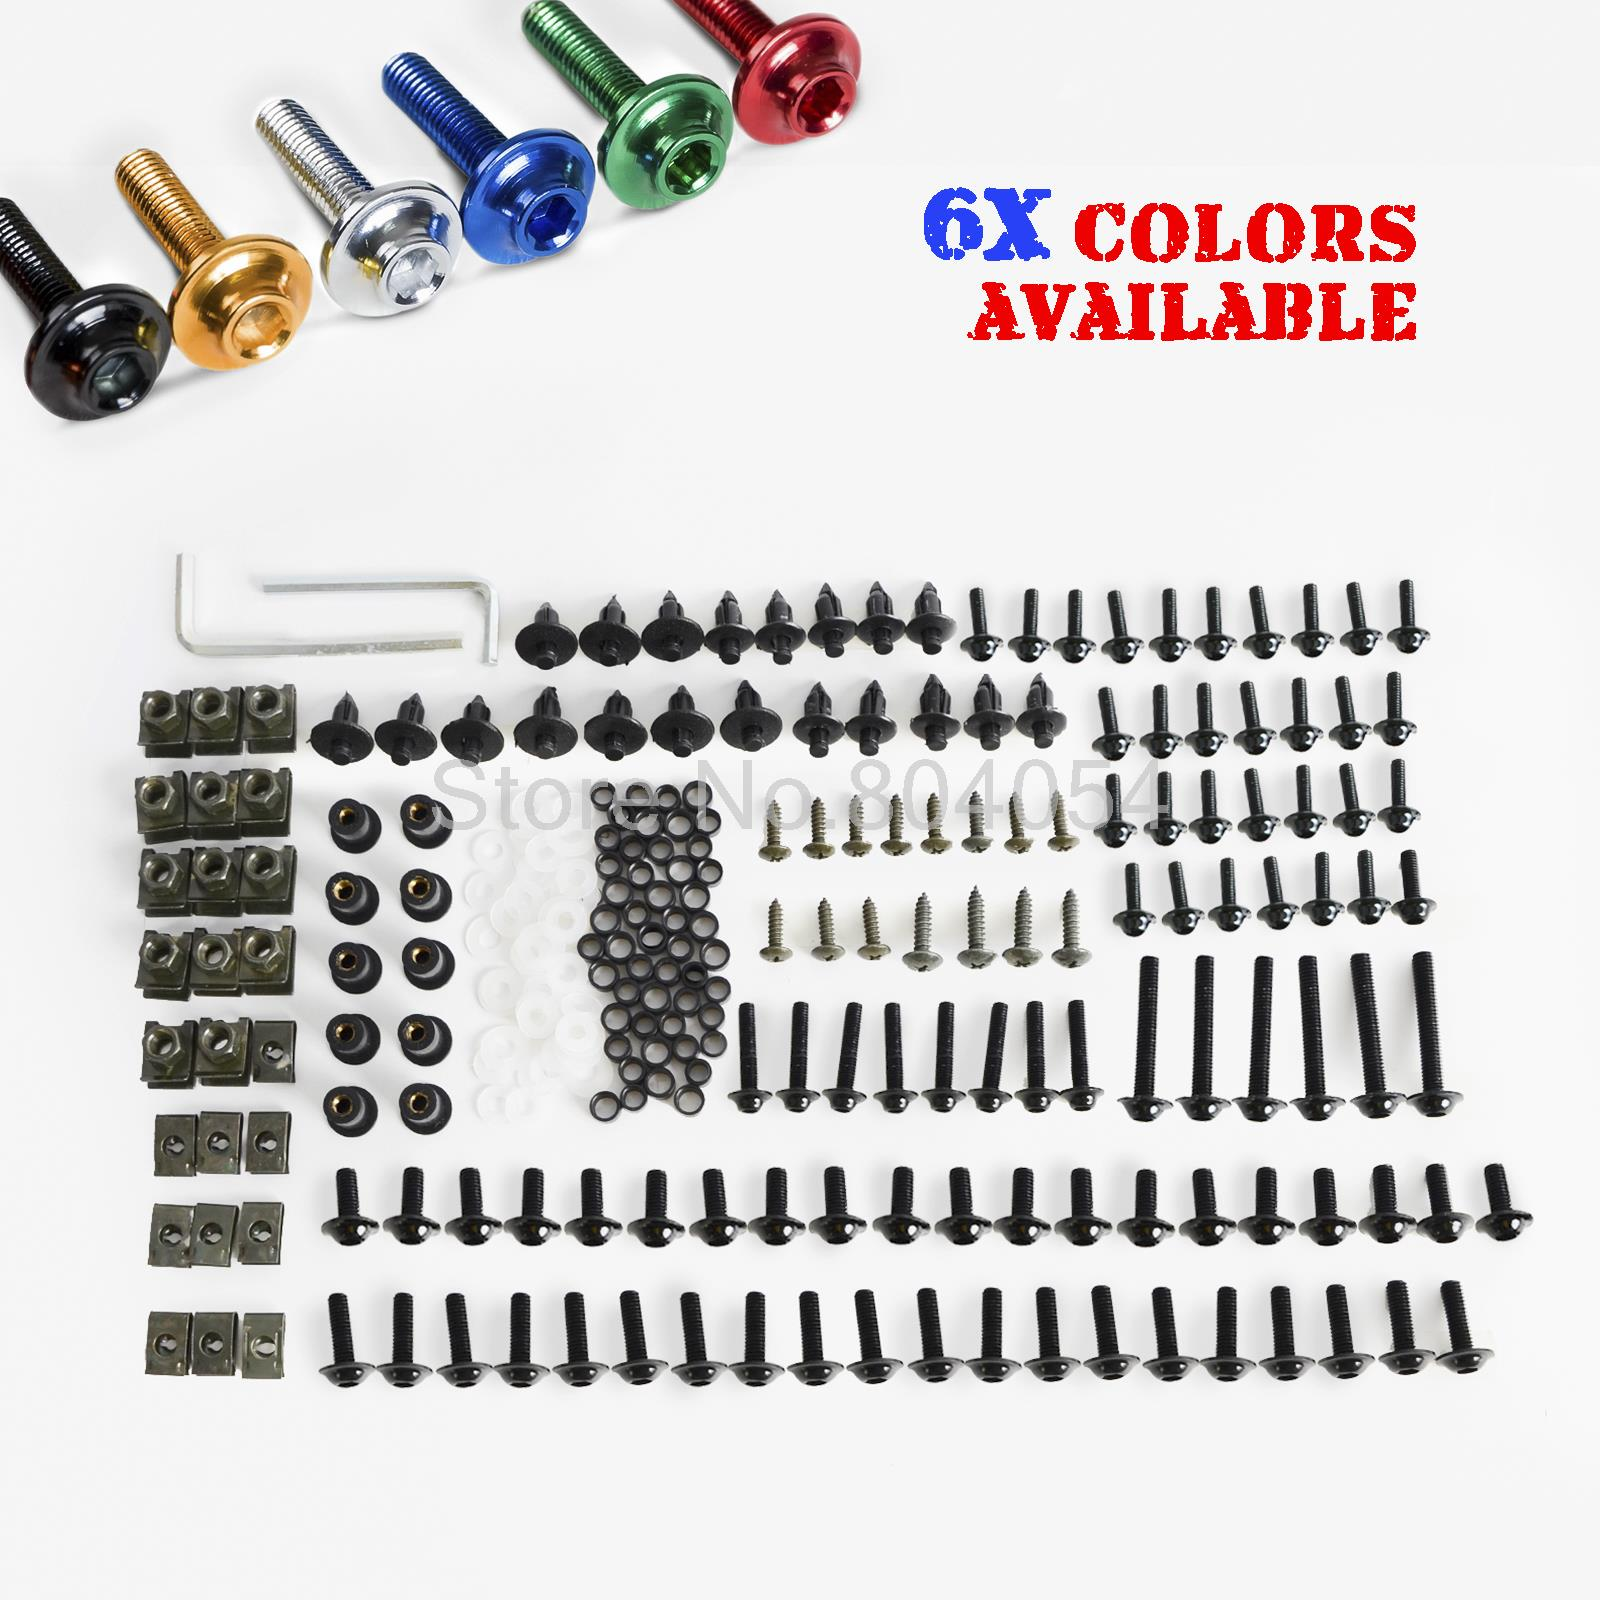 Motorcycle/Sportbike Windscreen Fairing Bolts Kit Fastener Clips Screws